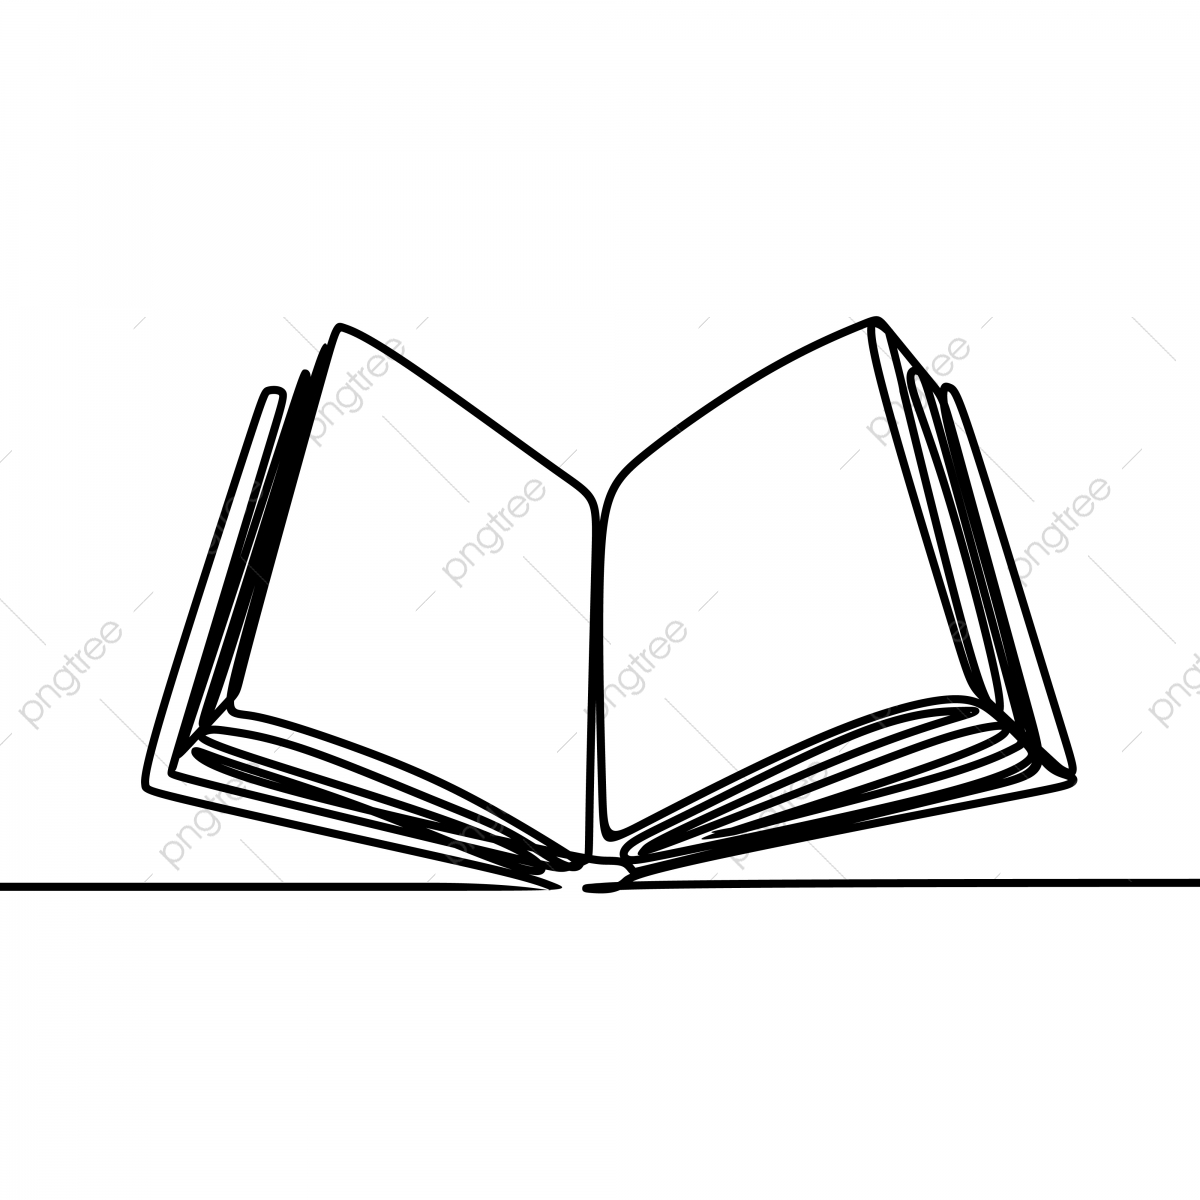 Book Open Single One Line Art Drawing Vector Illustration, Book.